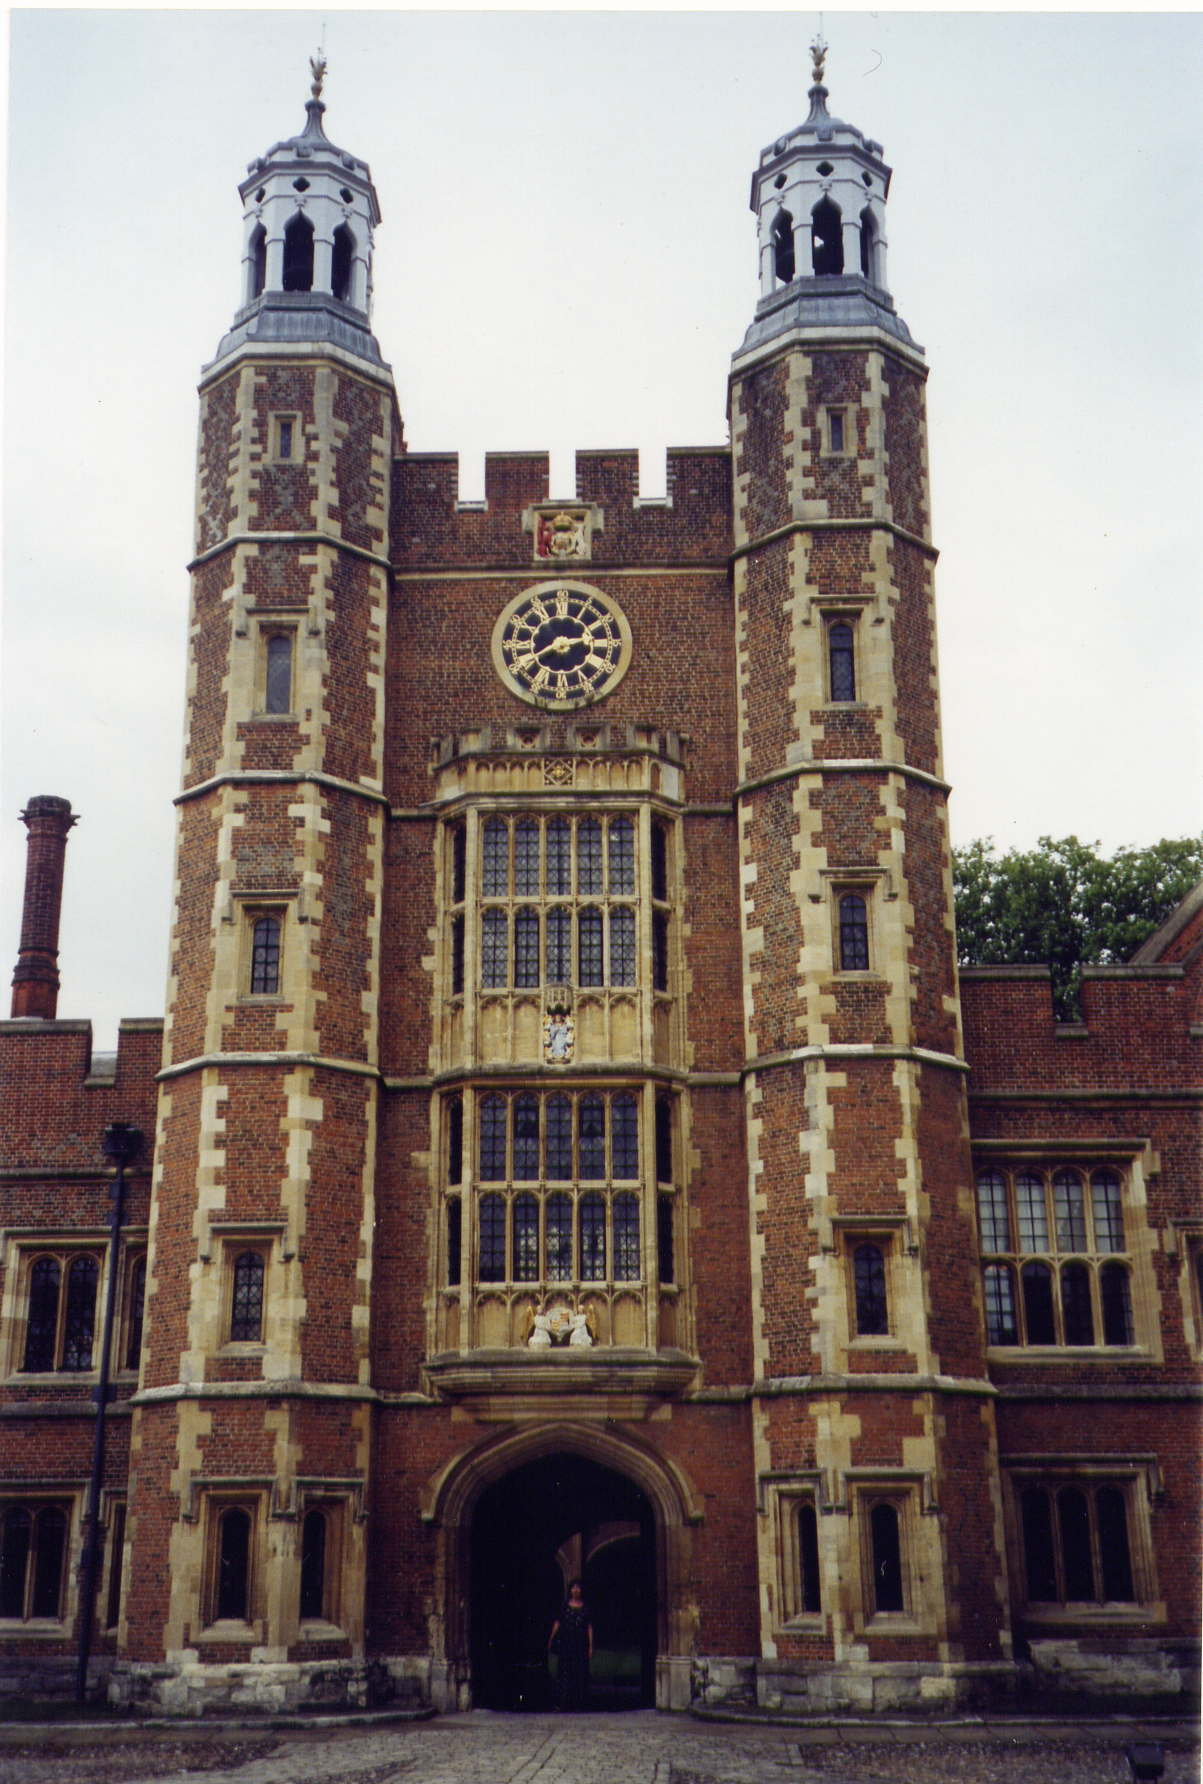 Eton Clock Tower